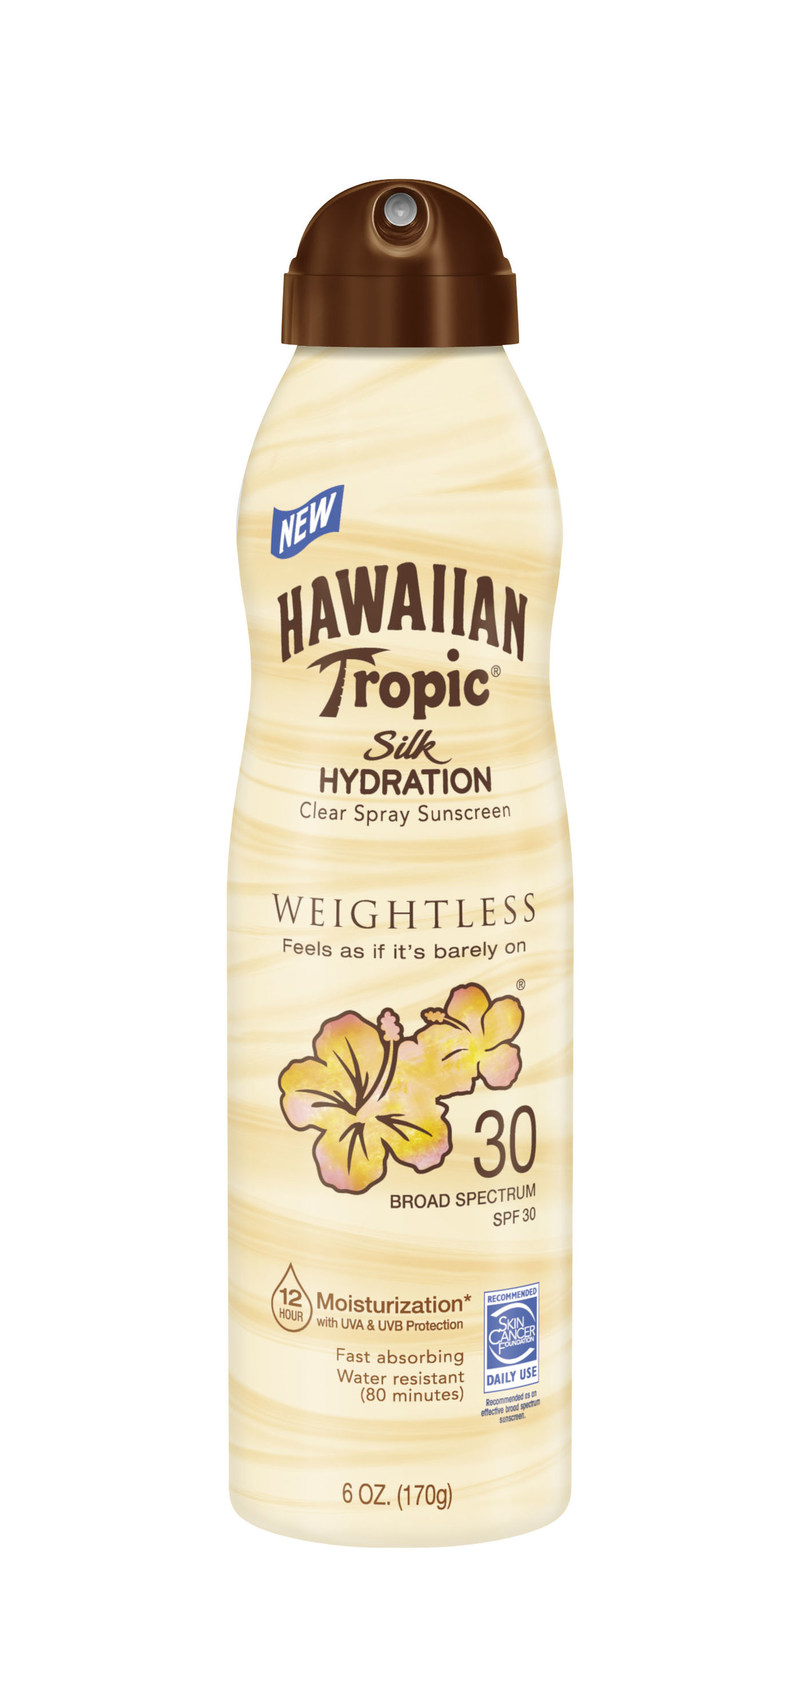 Hawaiian Tropic® Silk Hydration Weightless C-Spray SPF 30